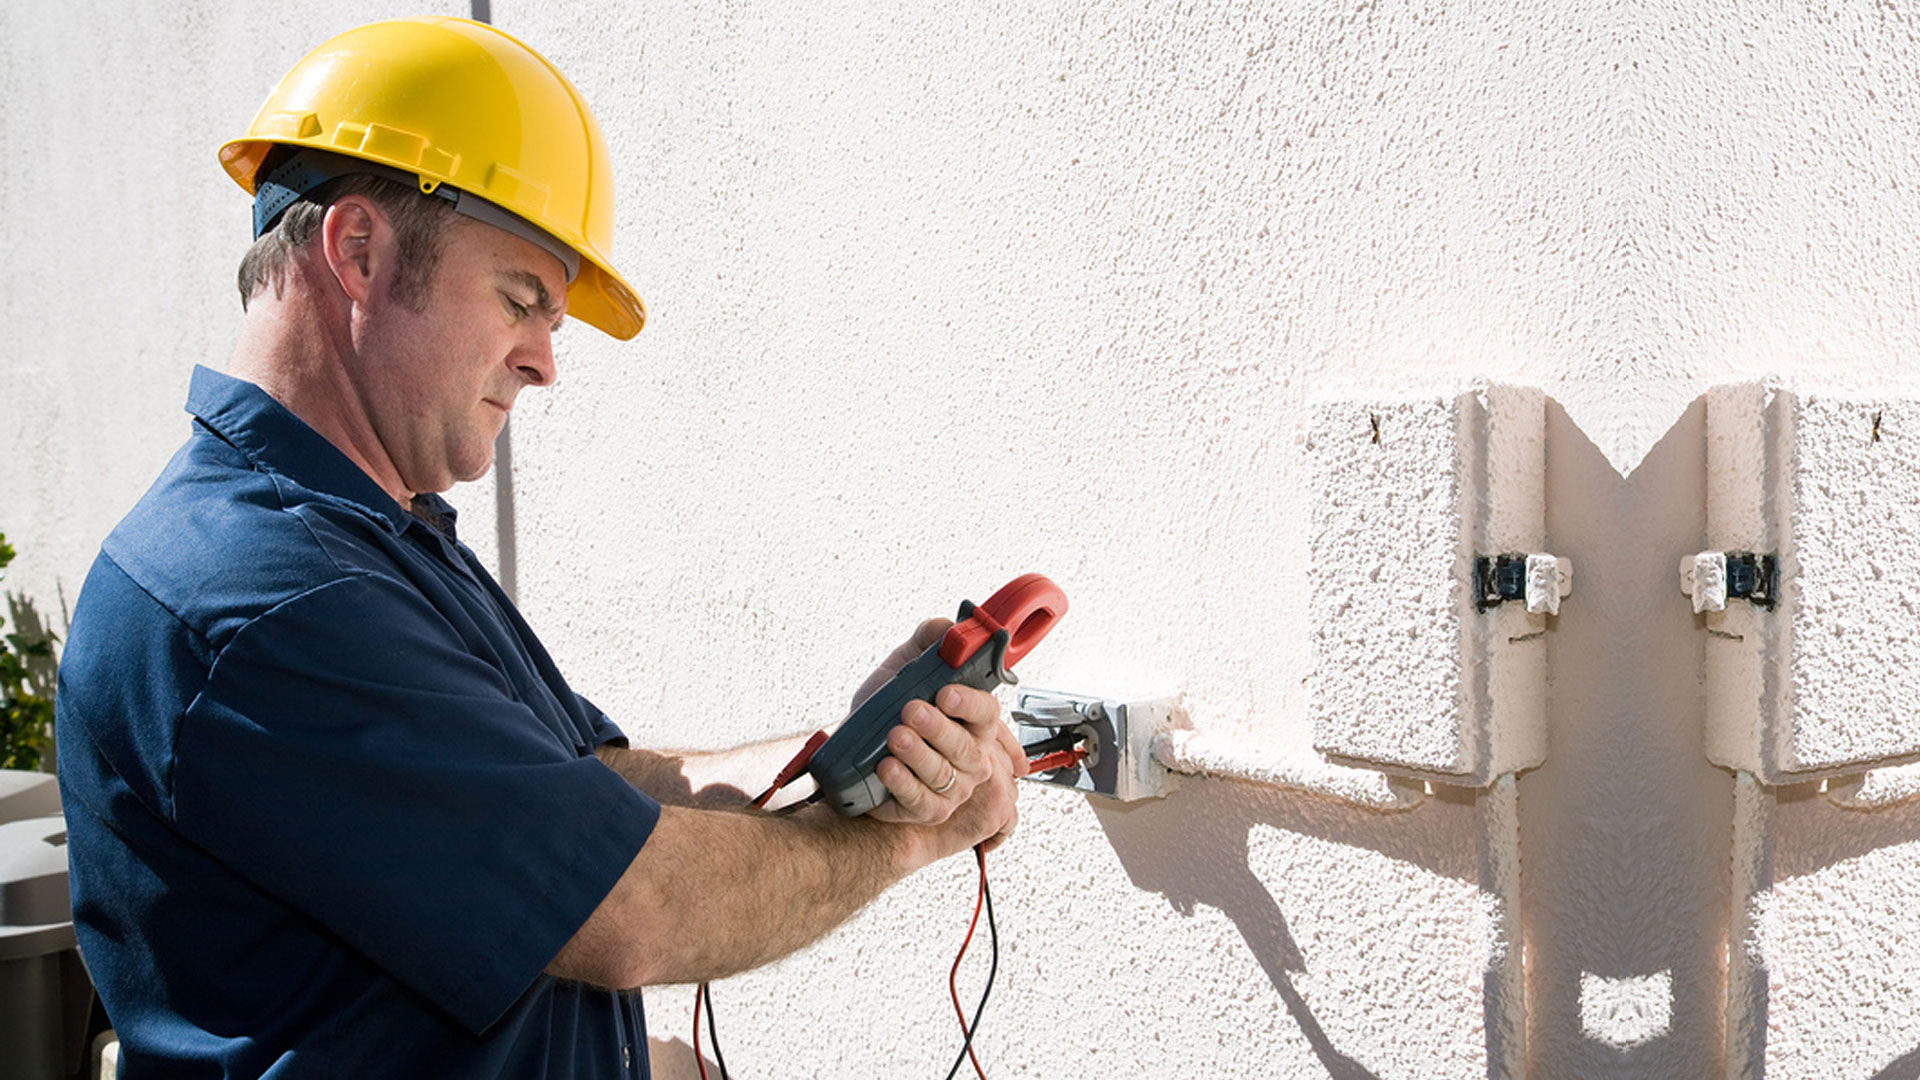 Commercial Electrician in Sunrise FL, Boynton Beach, Boca Raton